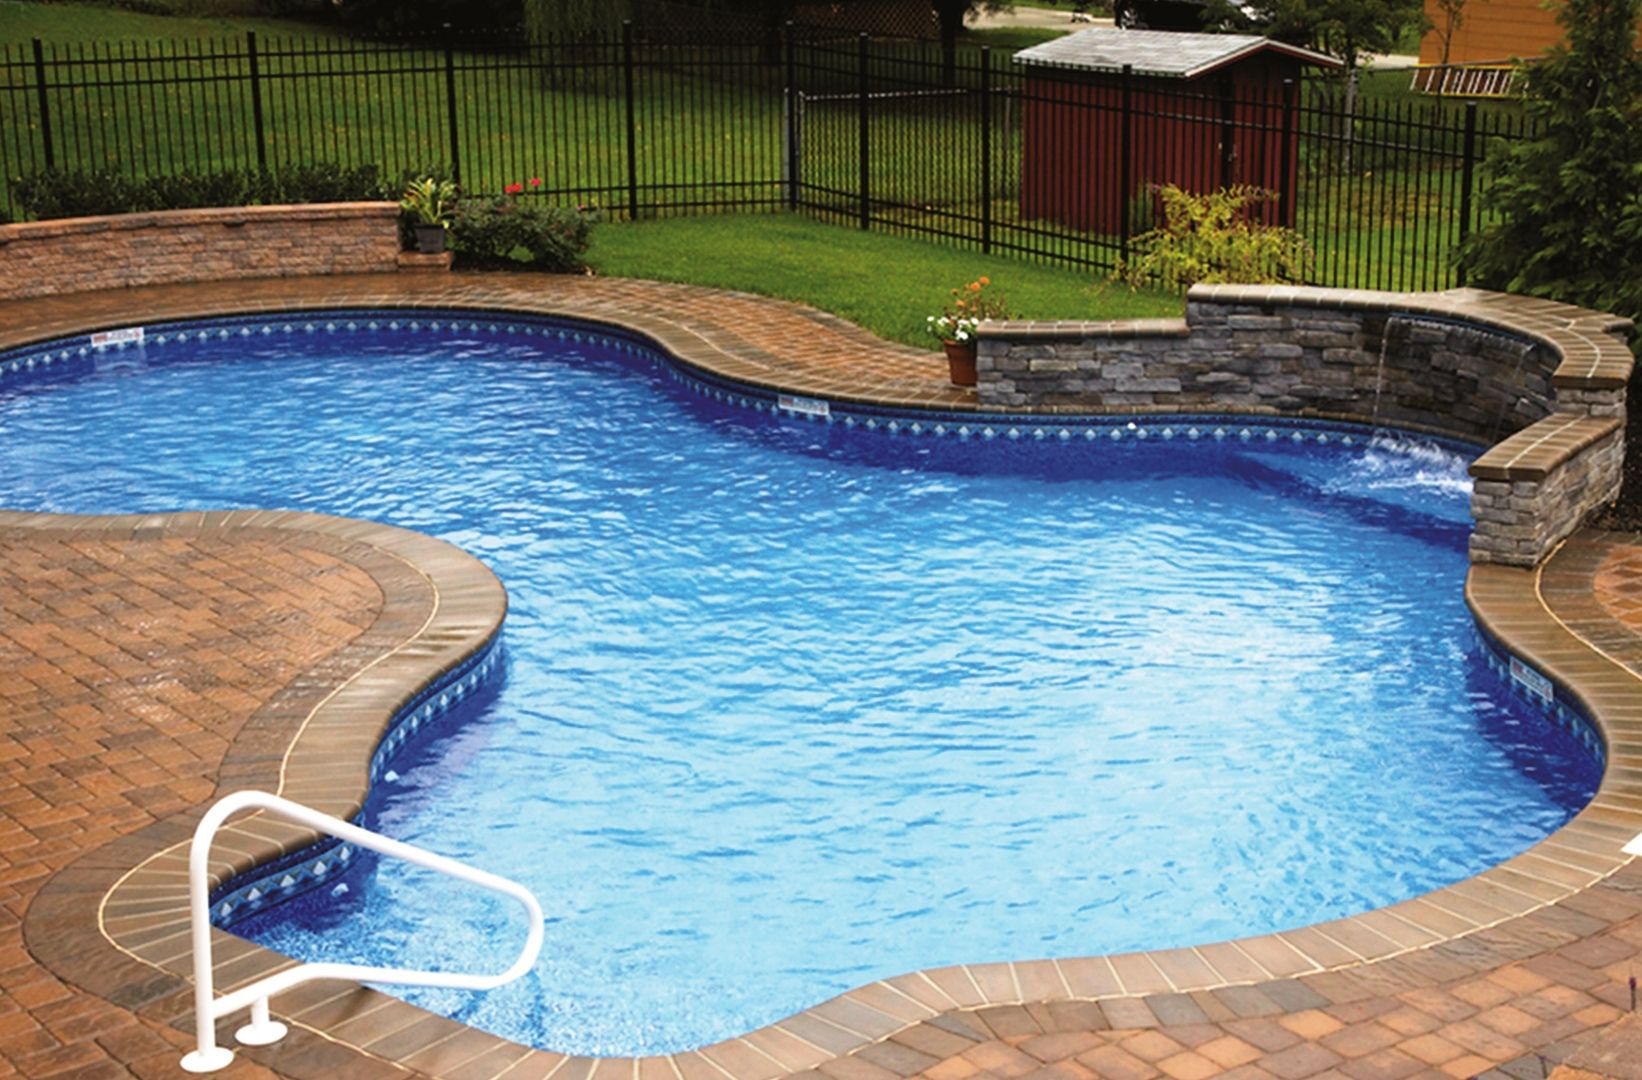 Back yard swimming pool ideas swimming pool design for Backyard swimming pool designs